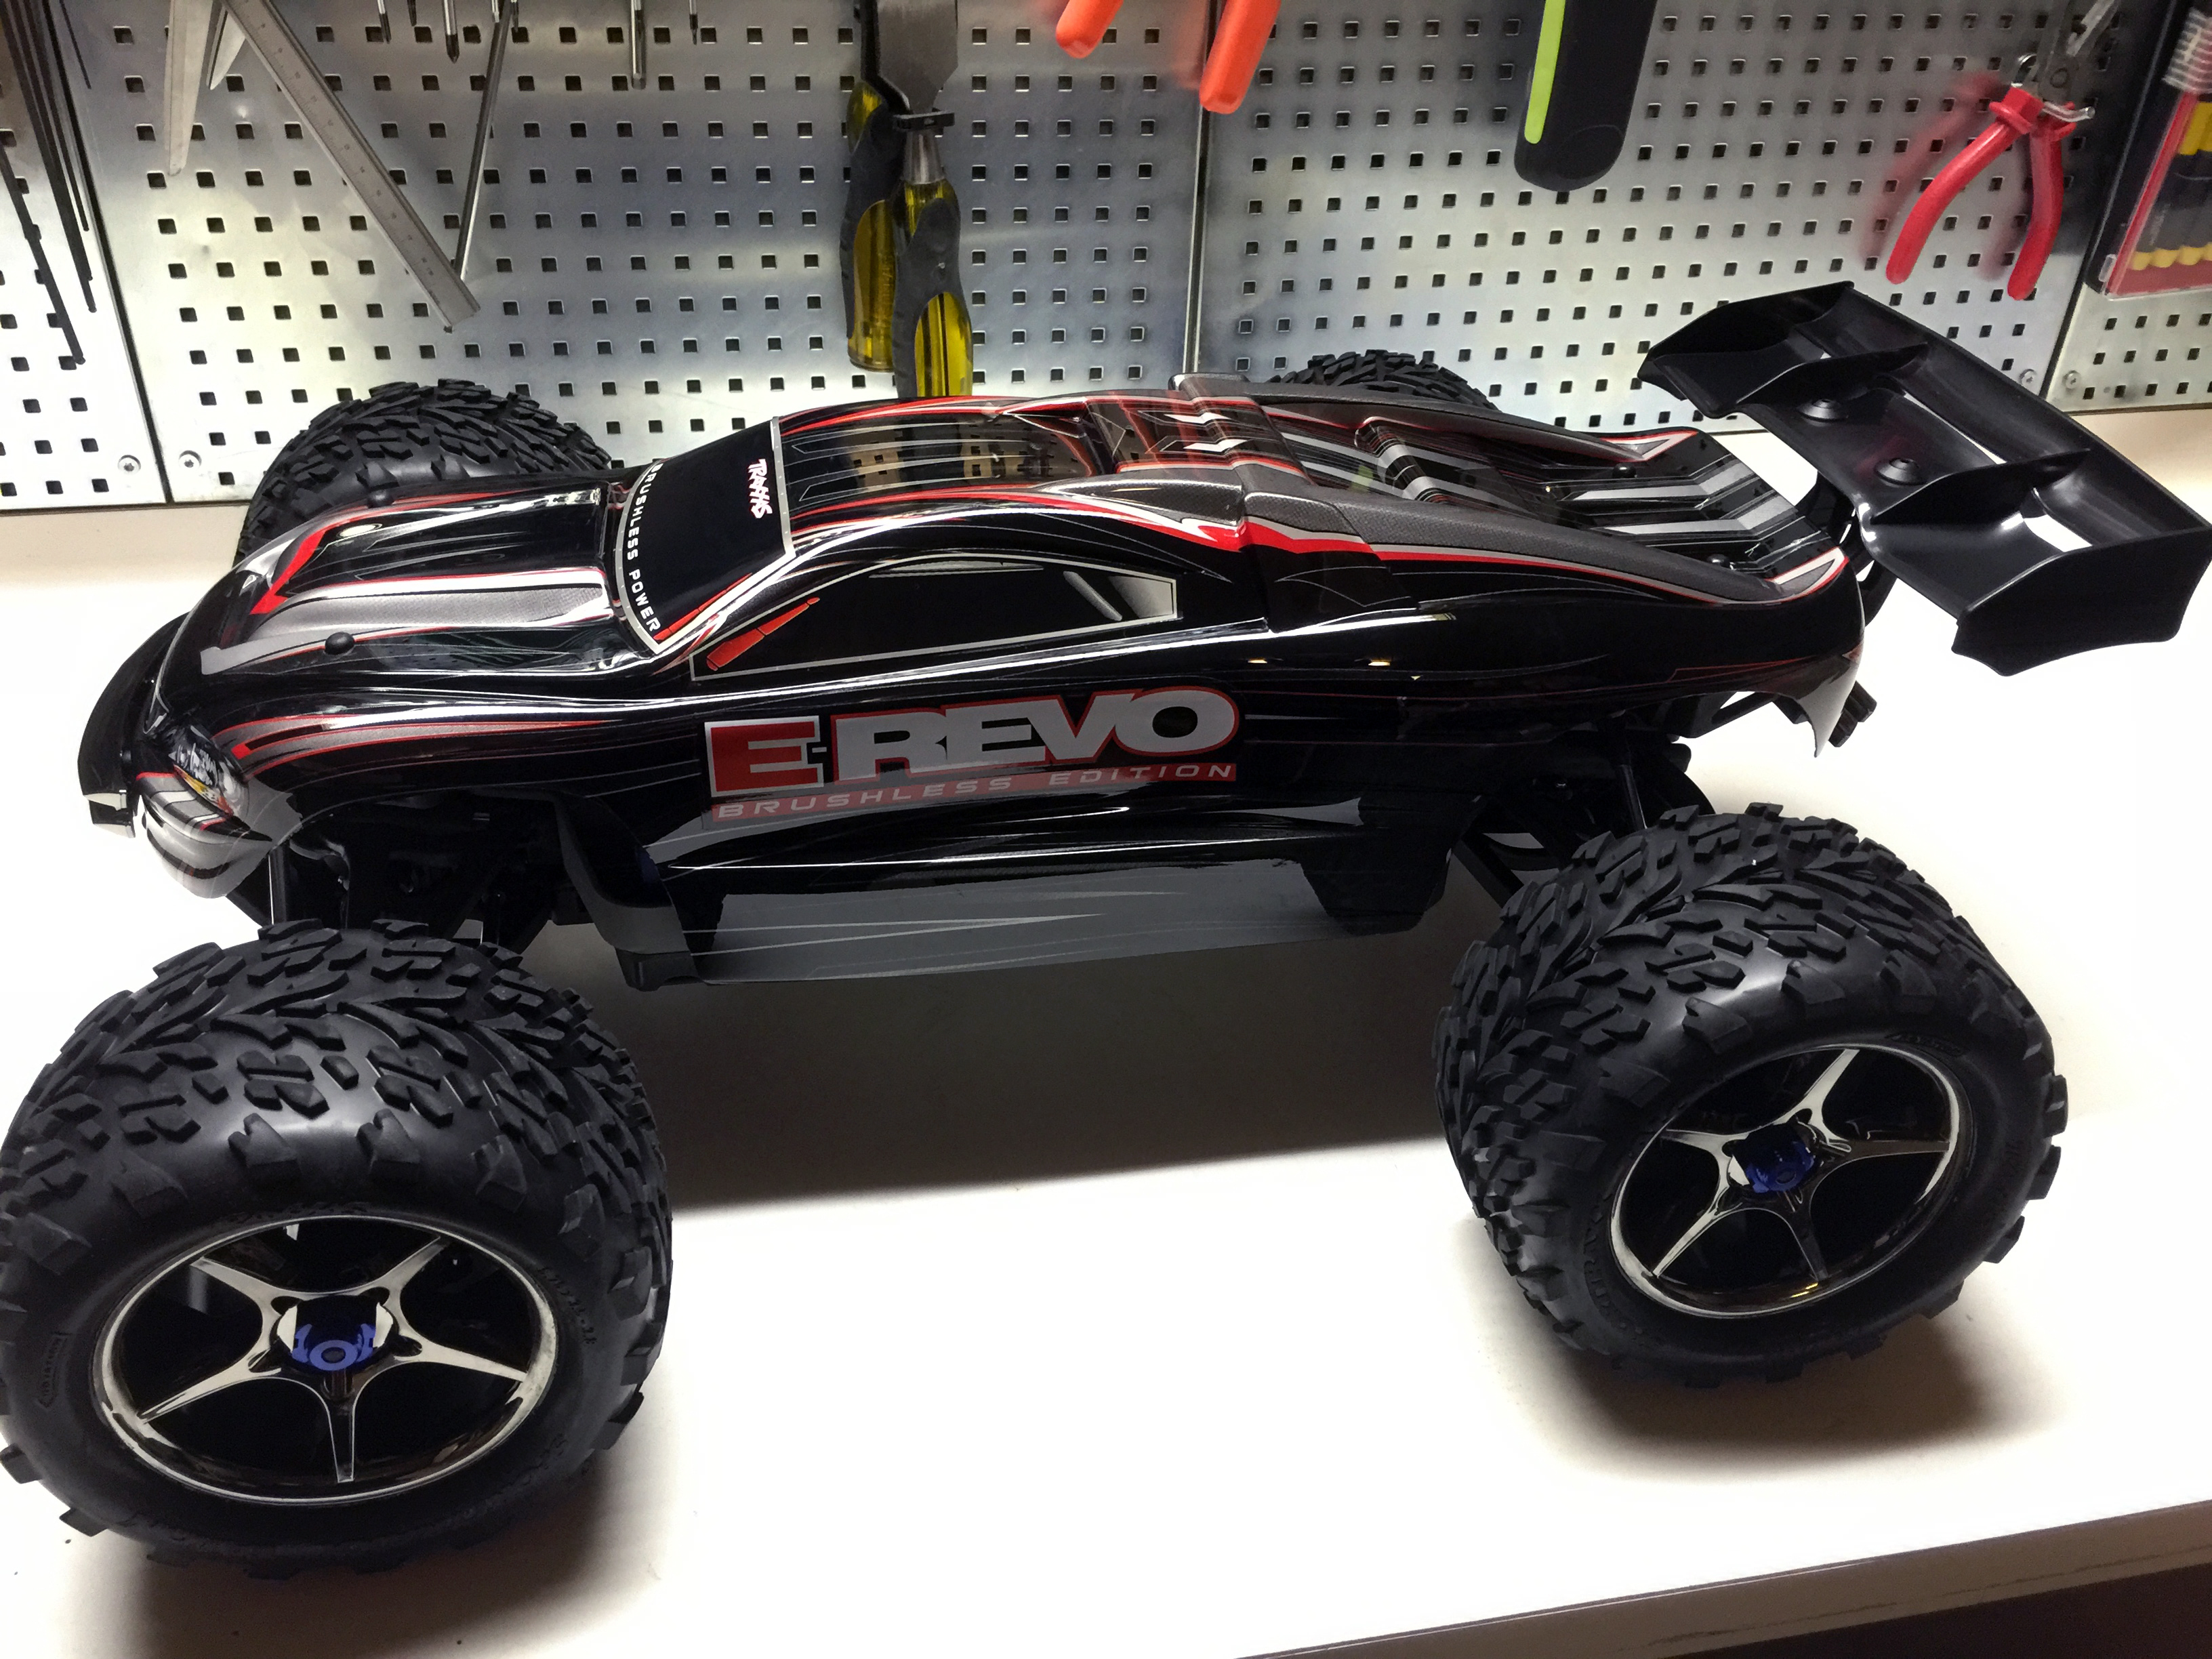 Traas E Revo Brushless 4wd Monster Truck